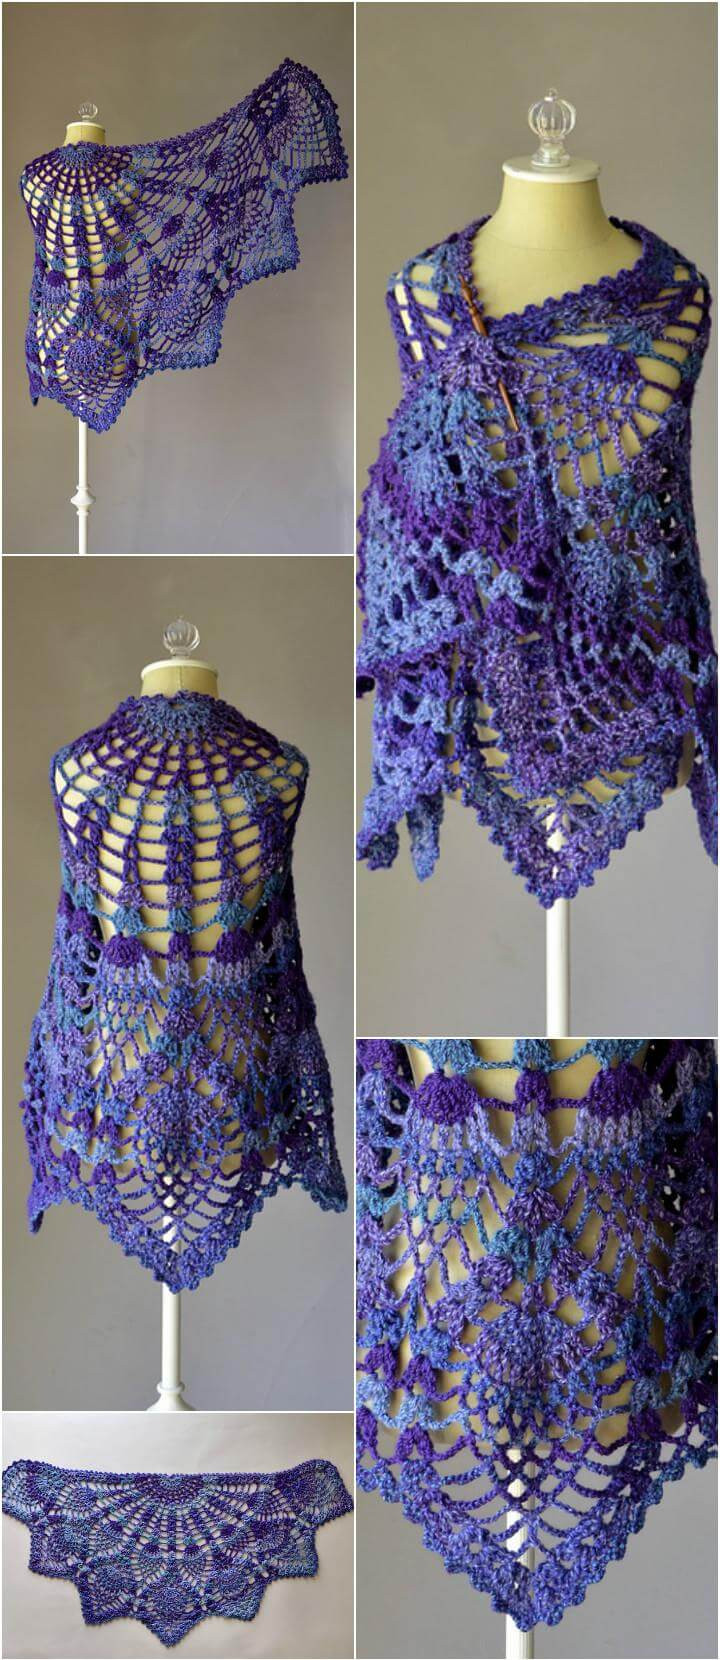 Pineapple Peacock Shawl Awesome 10 Free Crochet Shawl Patterns for Women S Of Wonderful 20 Photos Pineapple Peacock Shawl